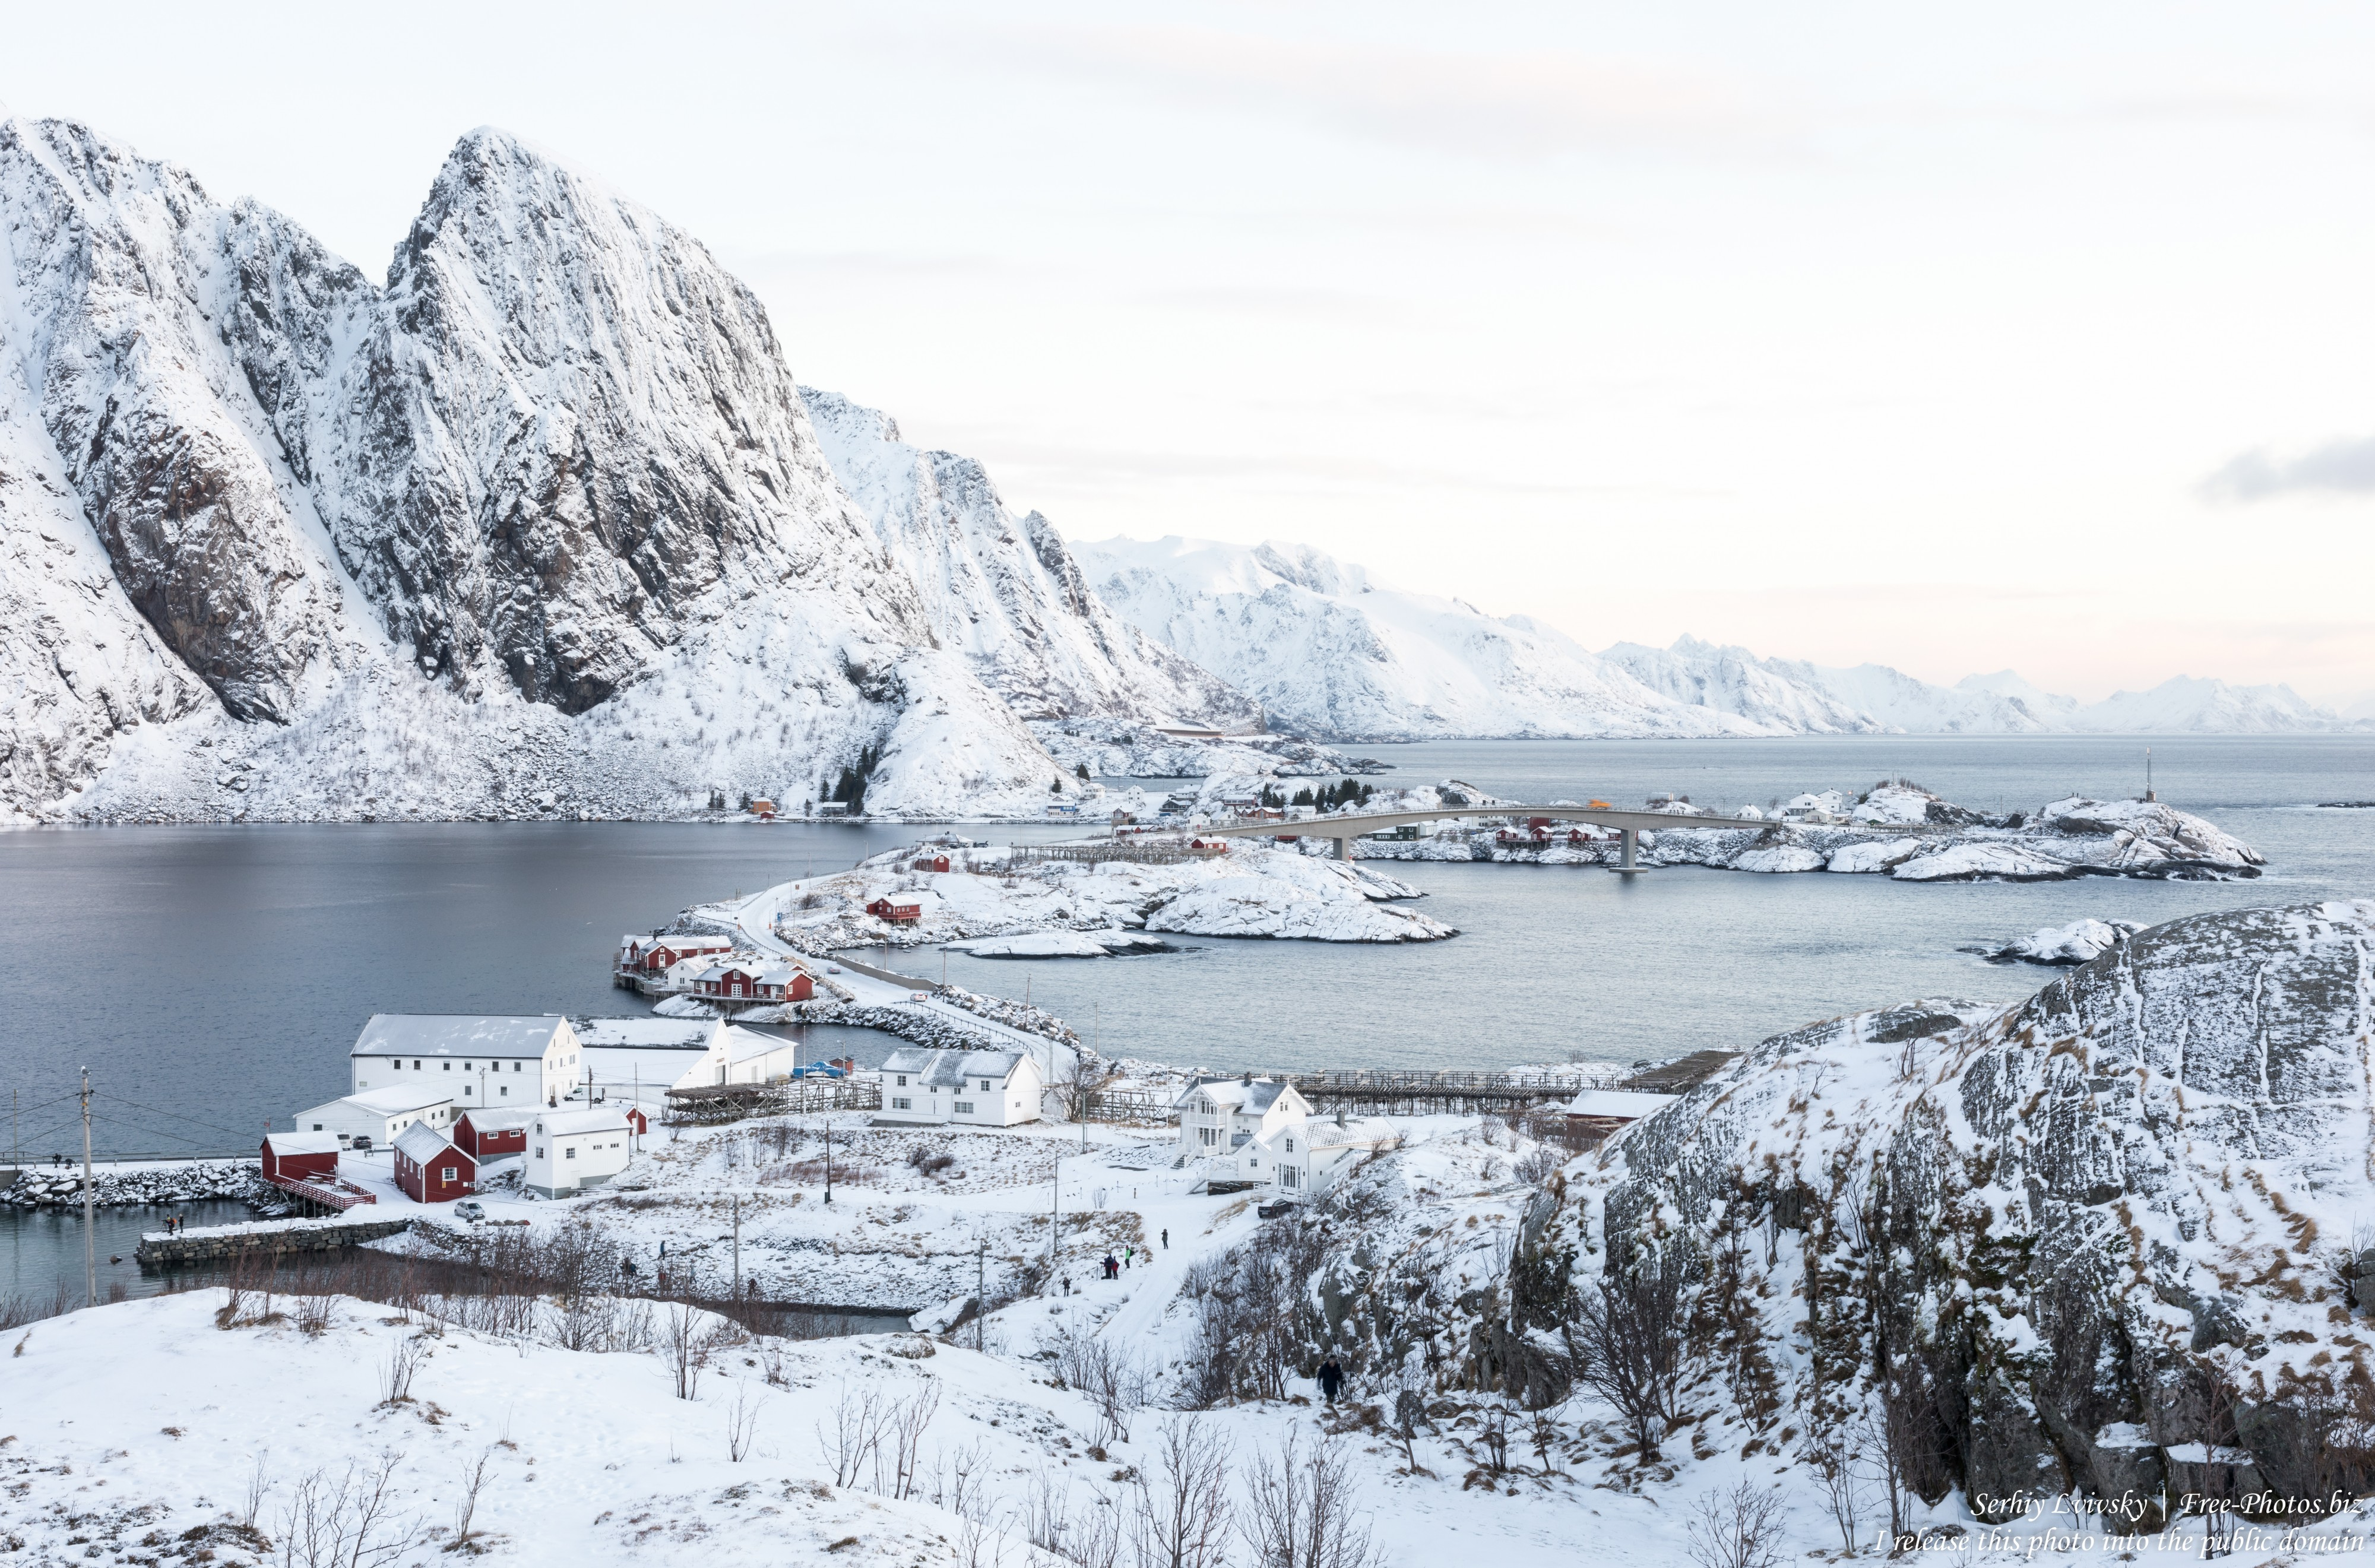 Sakrisoy and surroundings, Norway, in February 2020 by Serhiy Lvivsky, picture 21